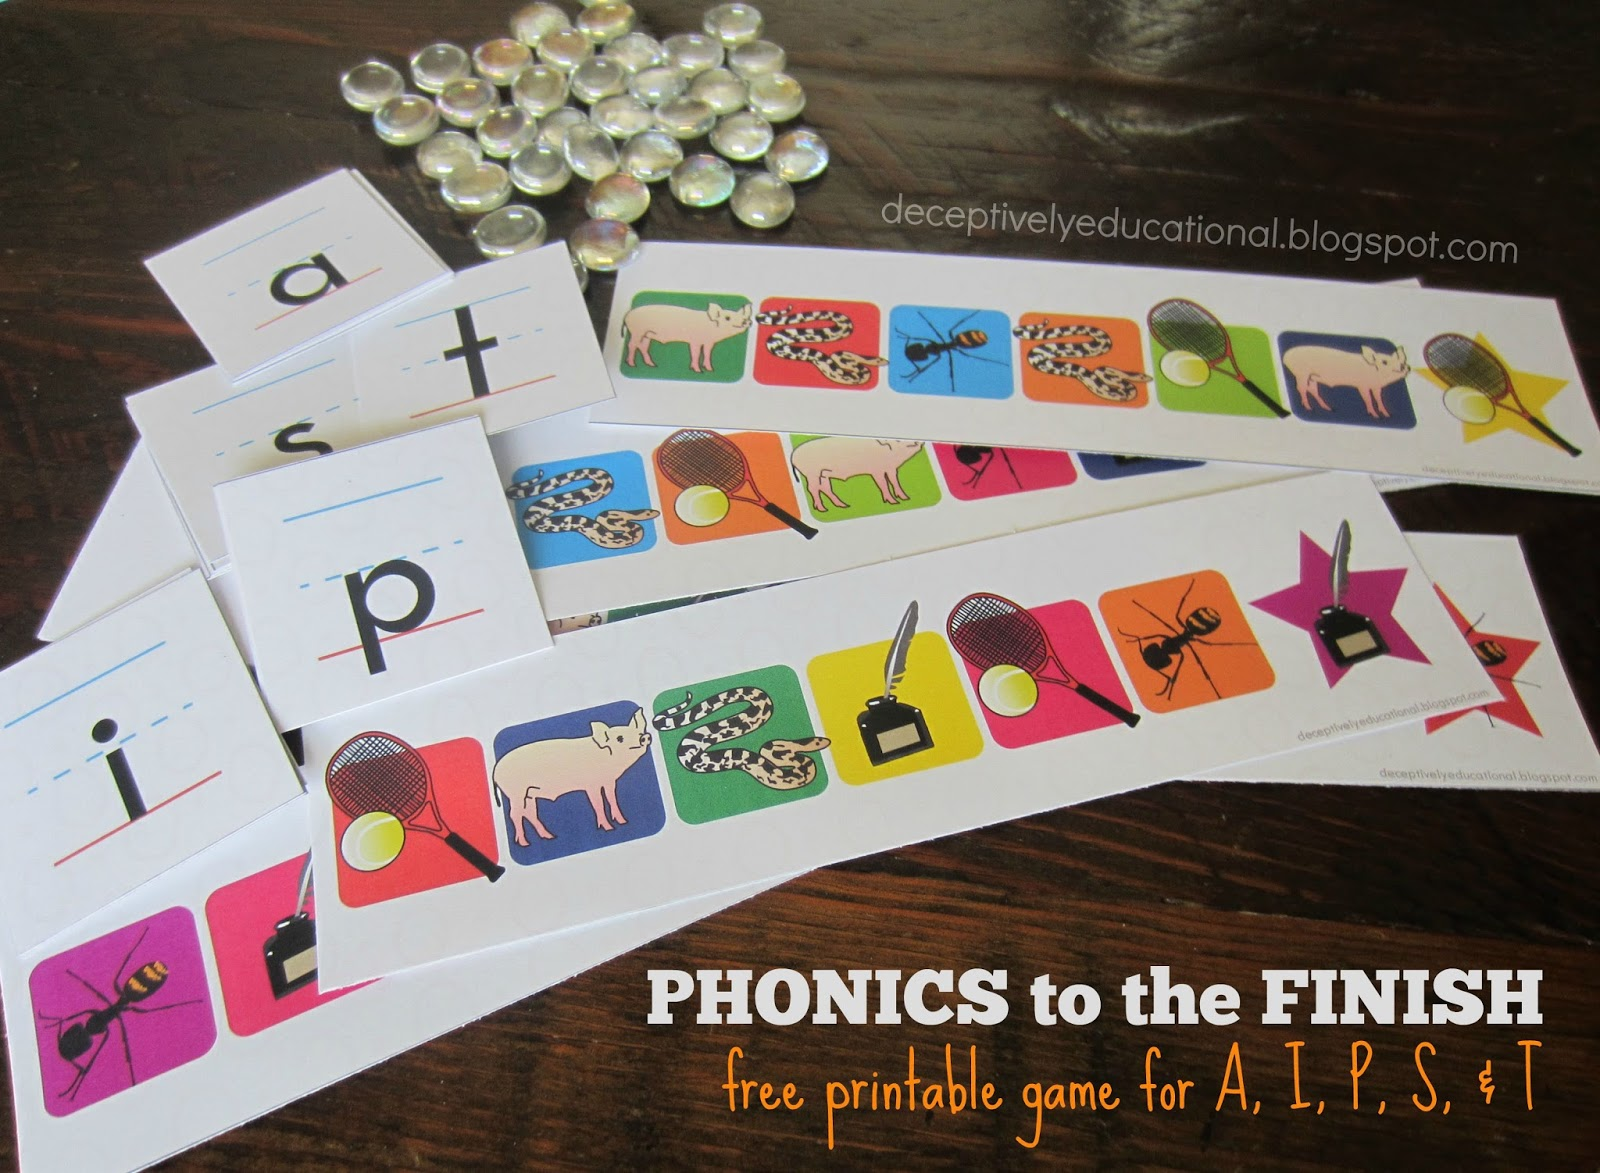 Relentlessly Fun Deceptively Educational Phonics To The Finish Free Printable Game A I P S